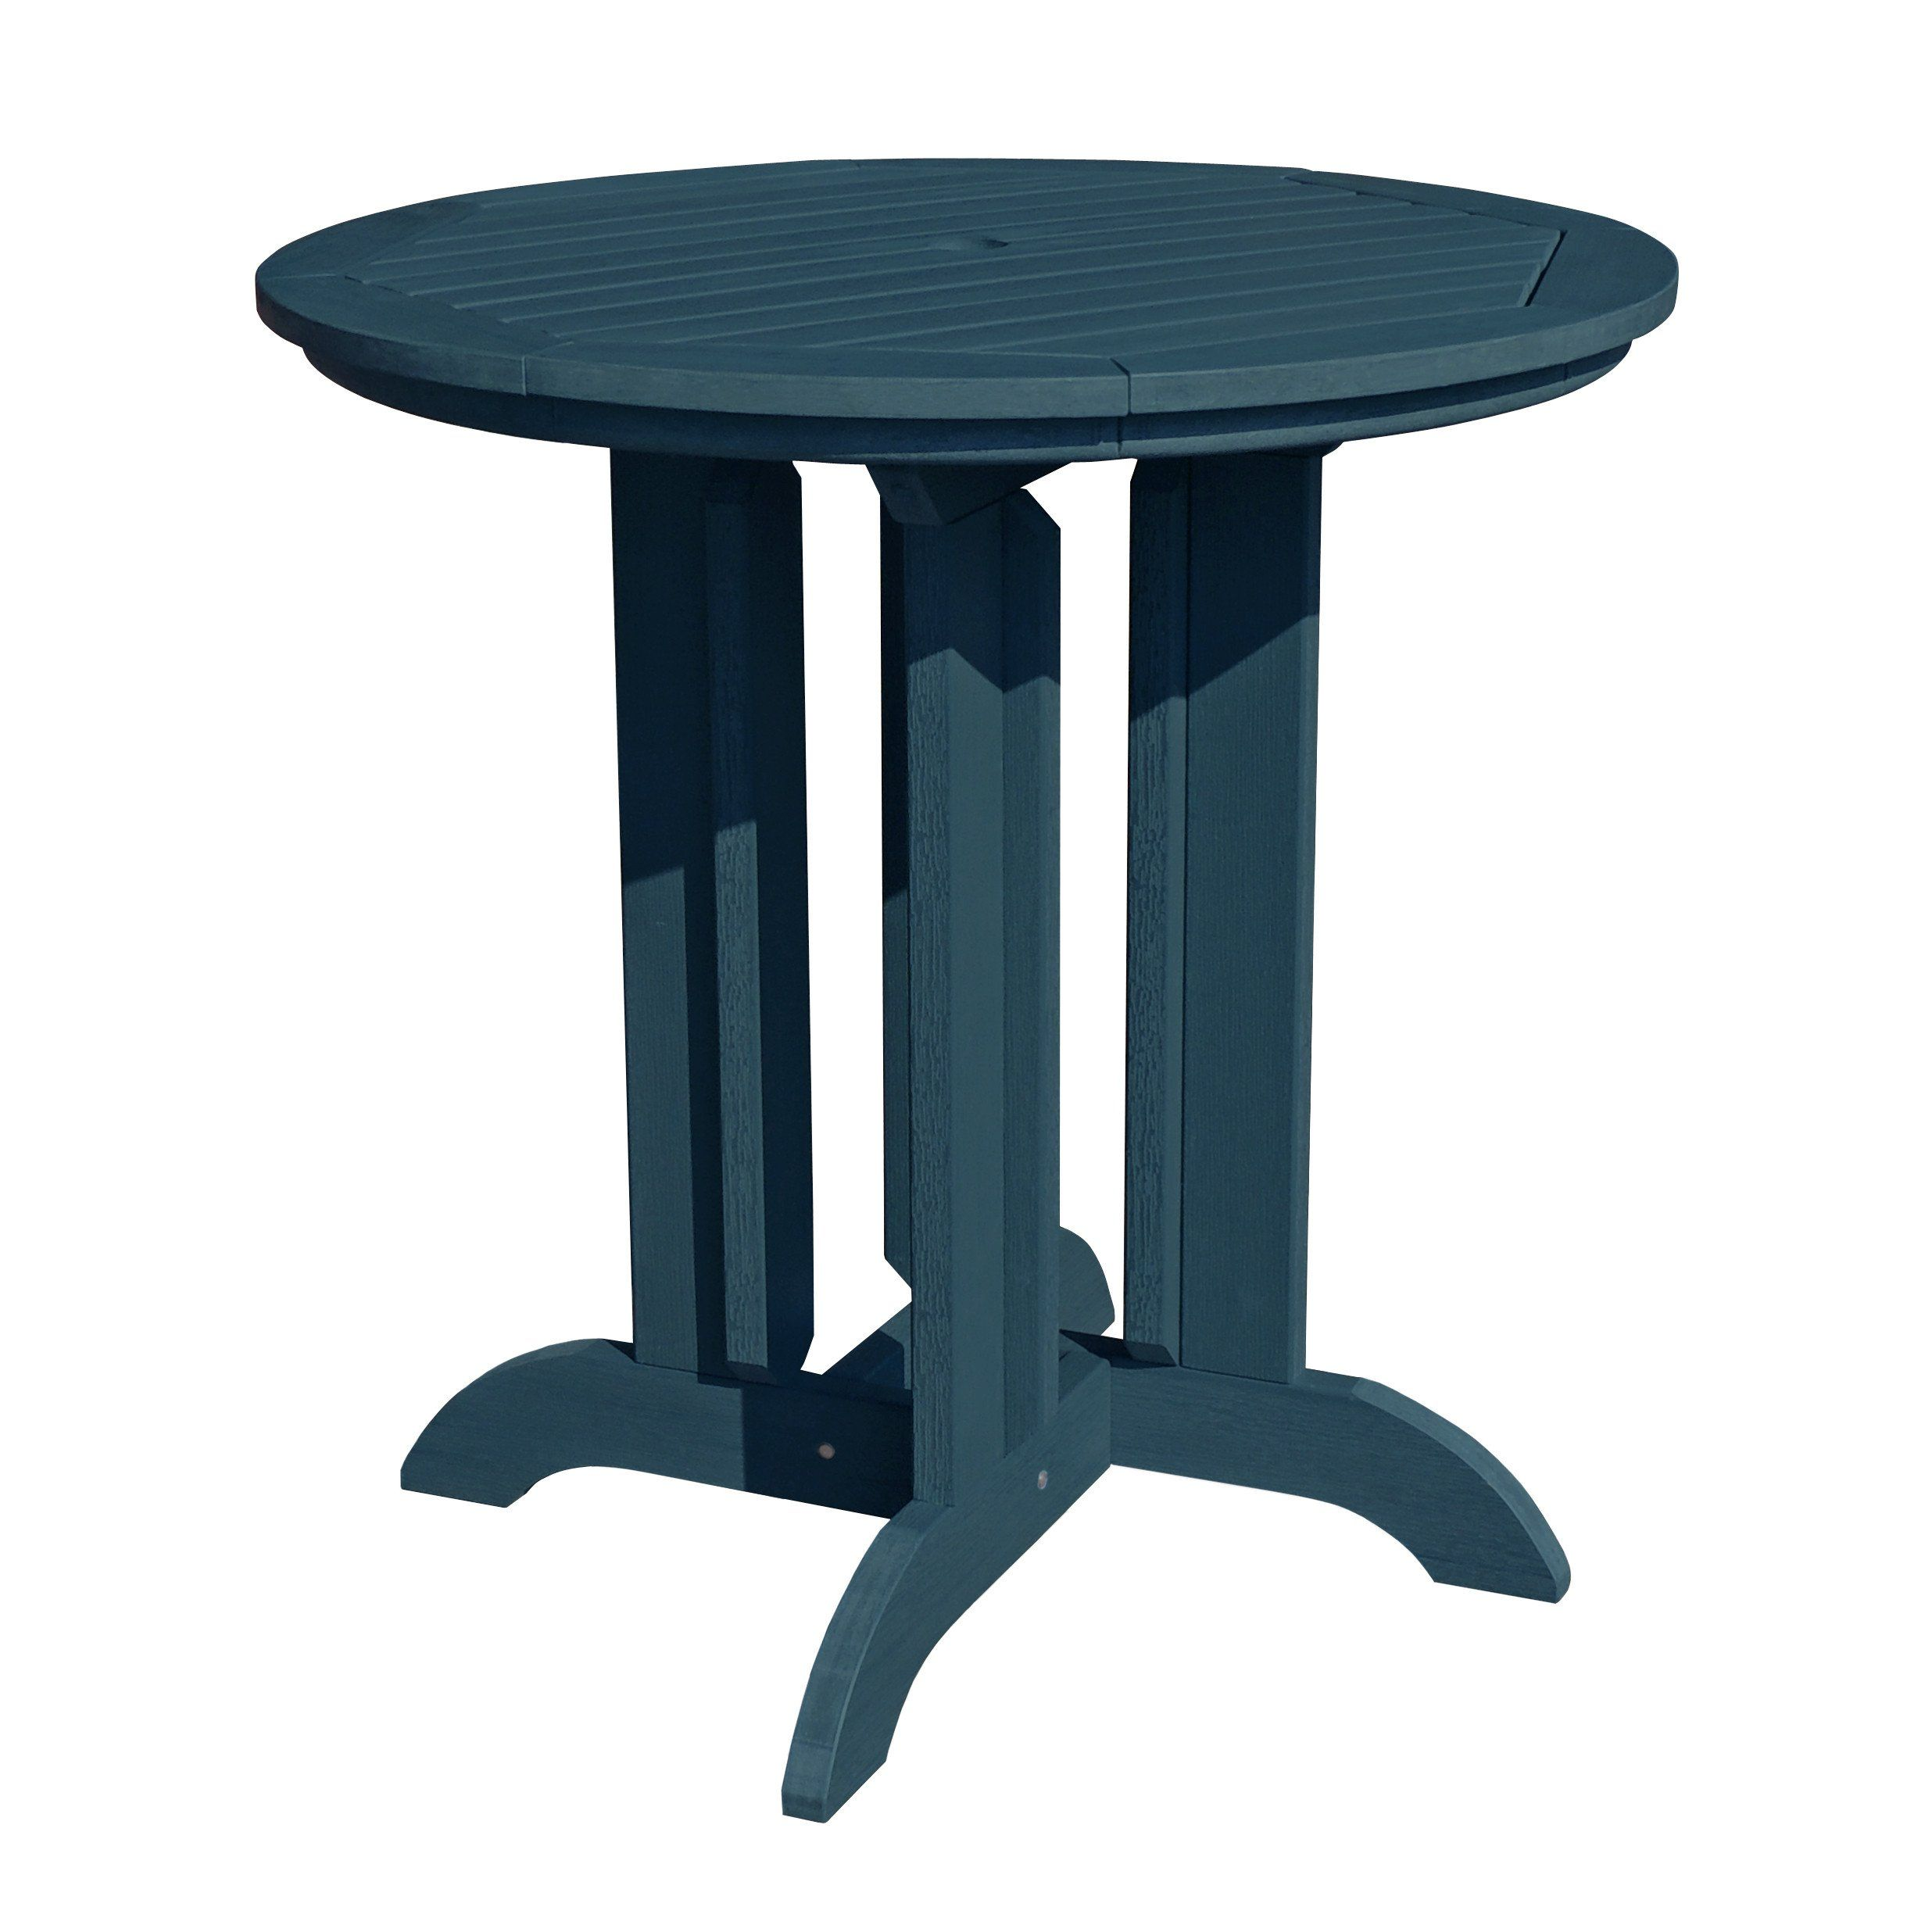 Round 36 Diameter Counter Dining Table